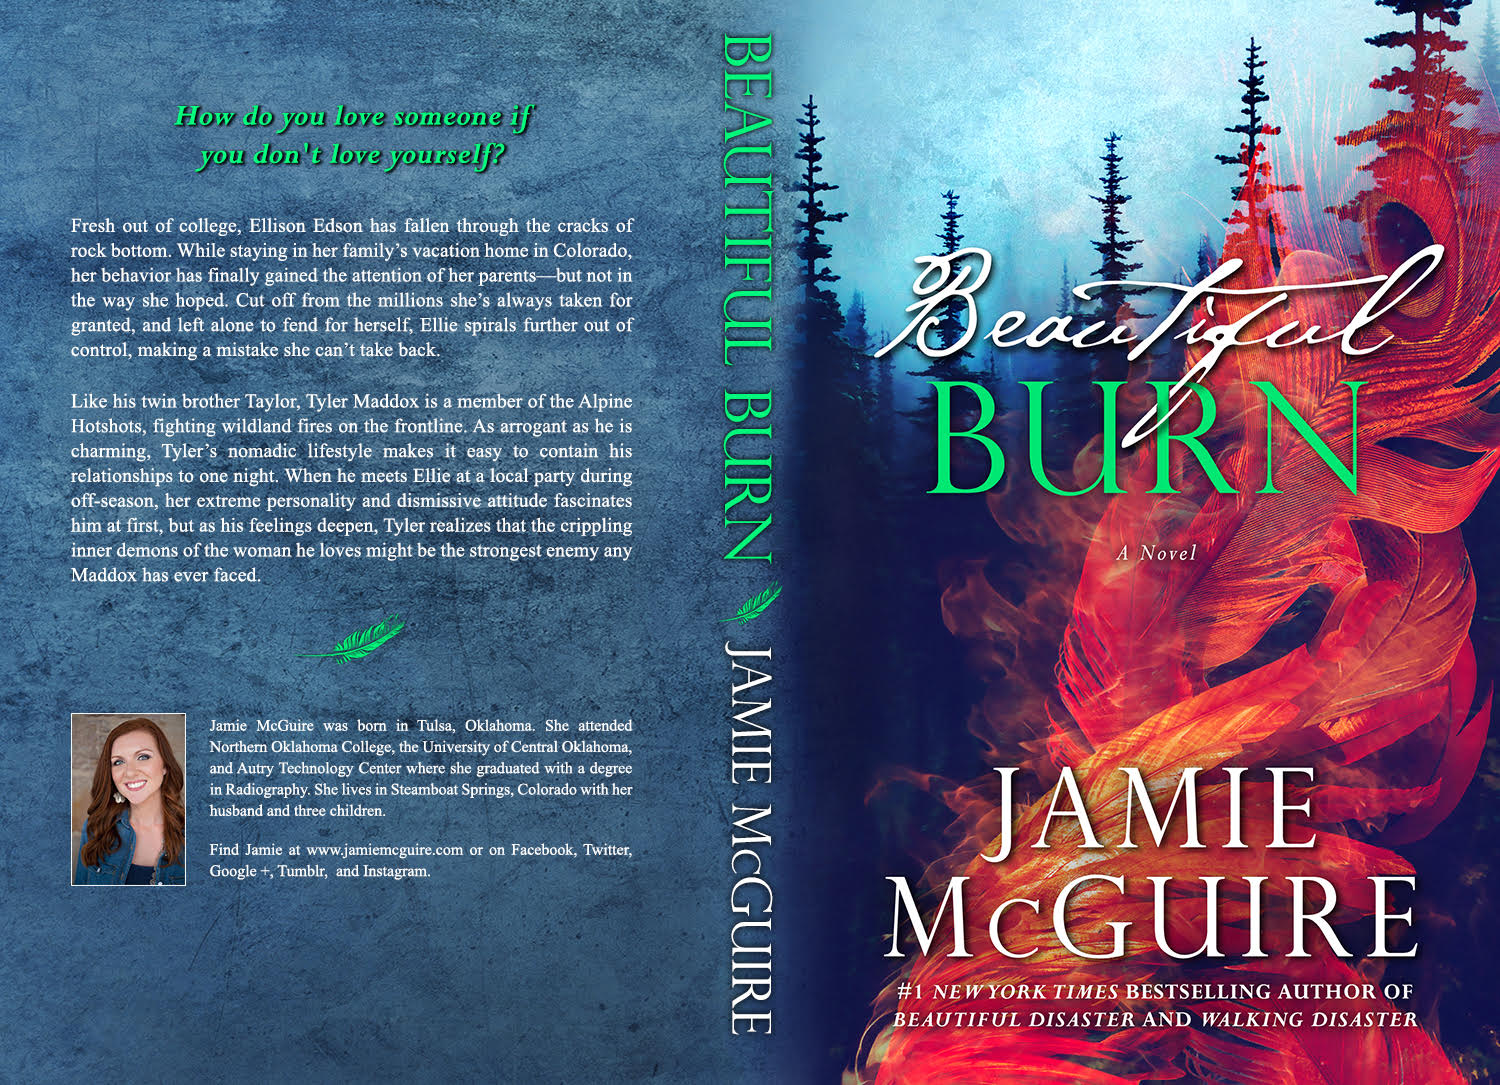 Beautiful Disaster Book Cover : Twilighters dream beautiful burn by jamie mcguire review